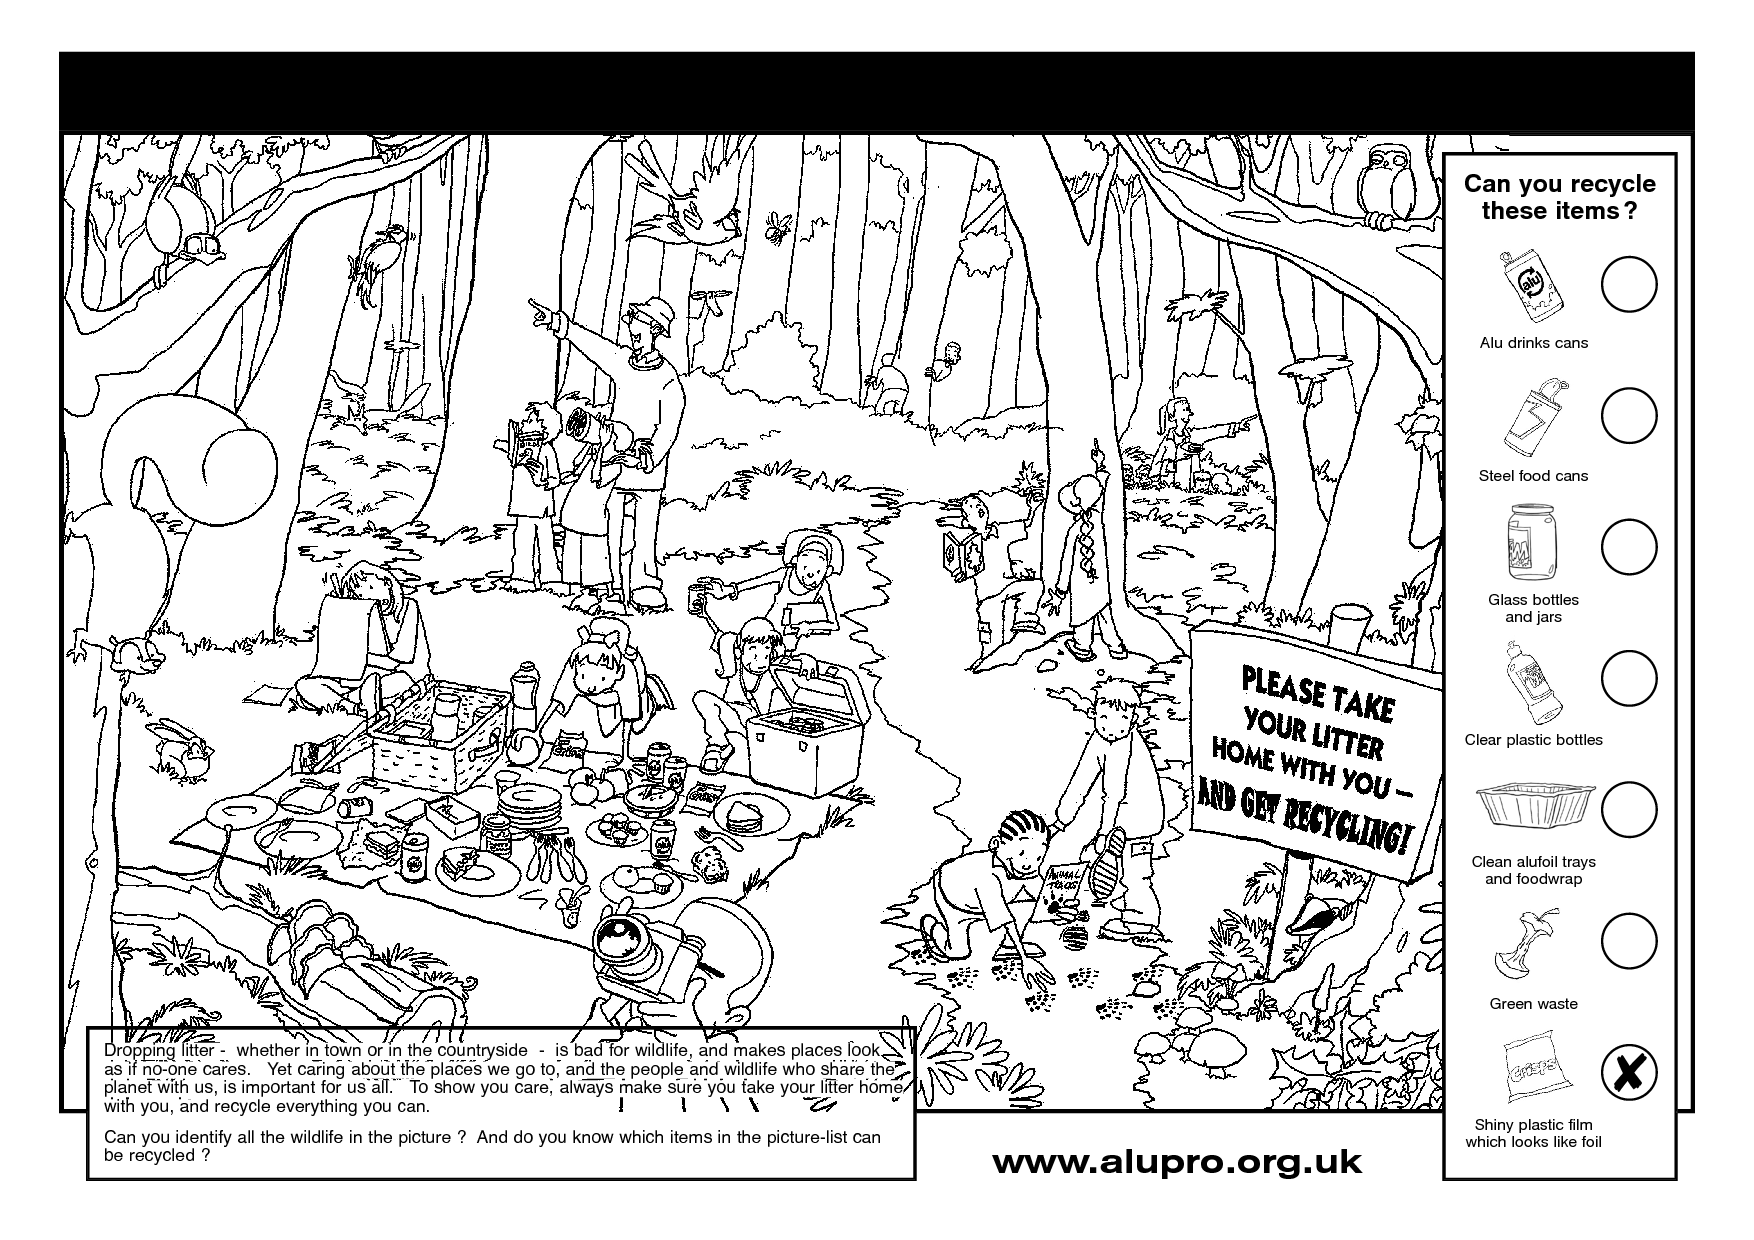 Recycling Coloring Pages Recycle Coloring Page Earth Day - birijus.com | 1240x1754